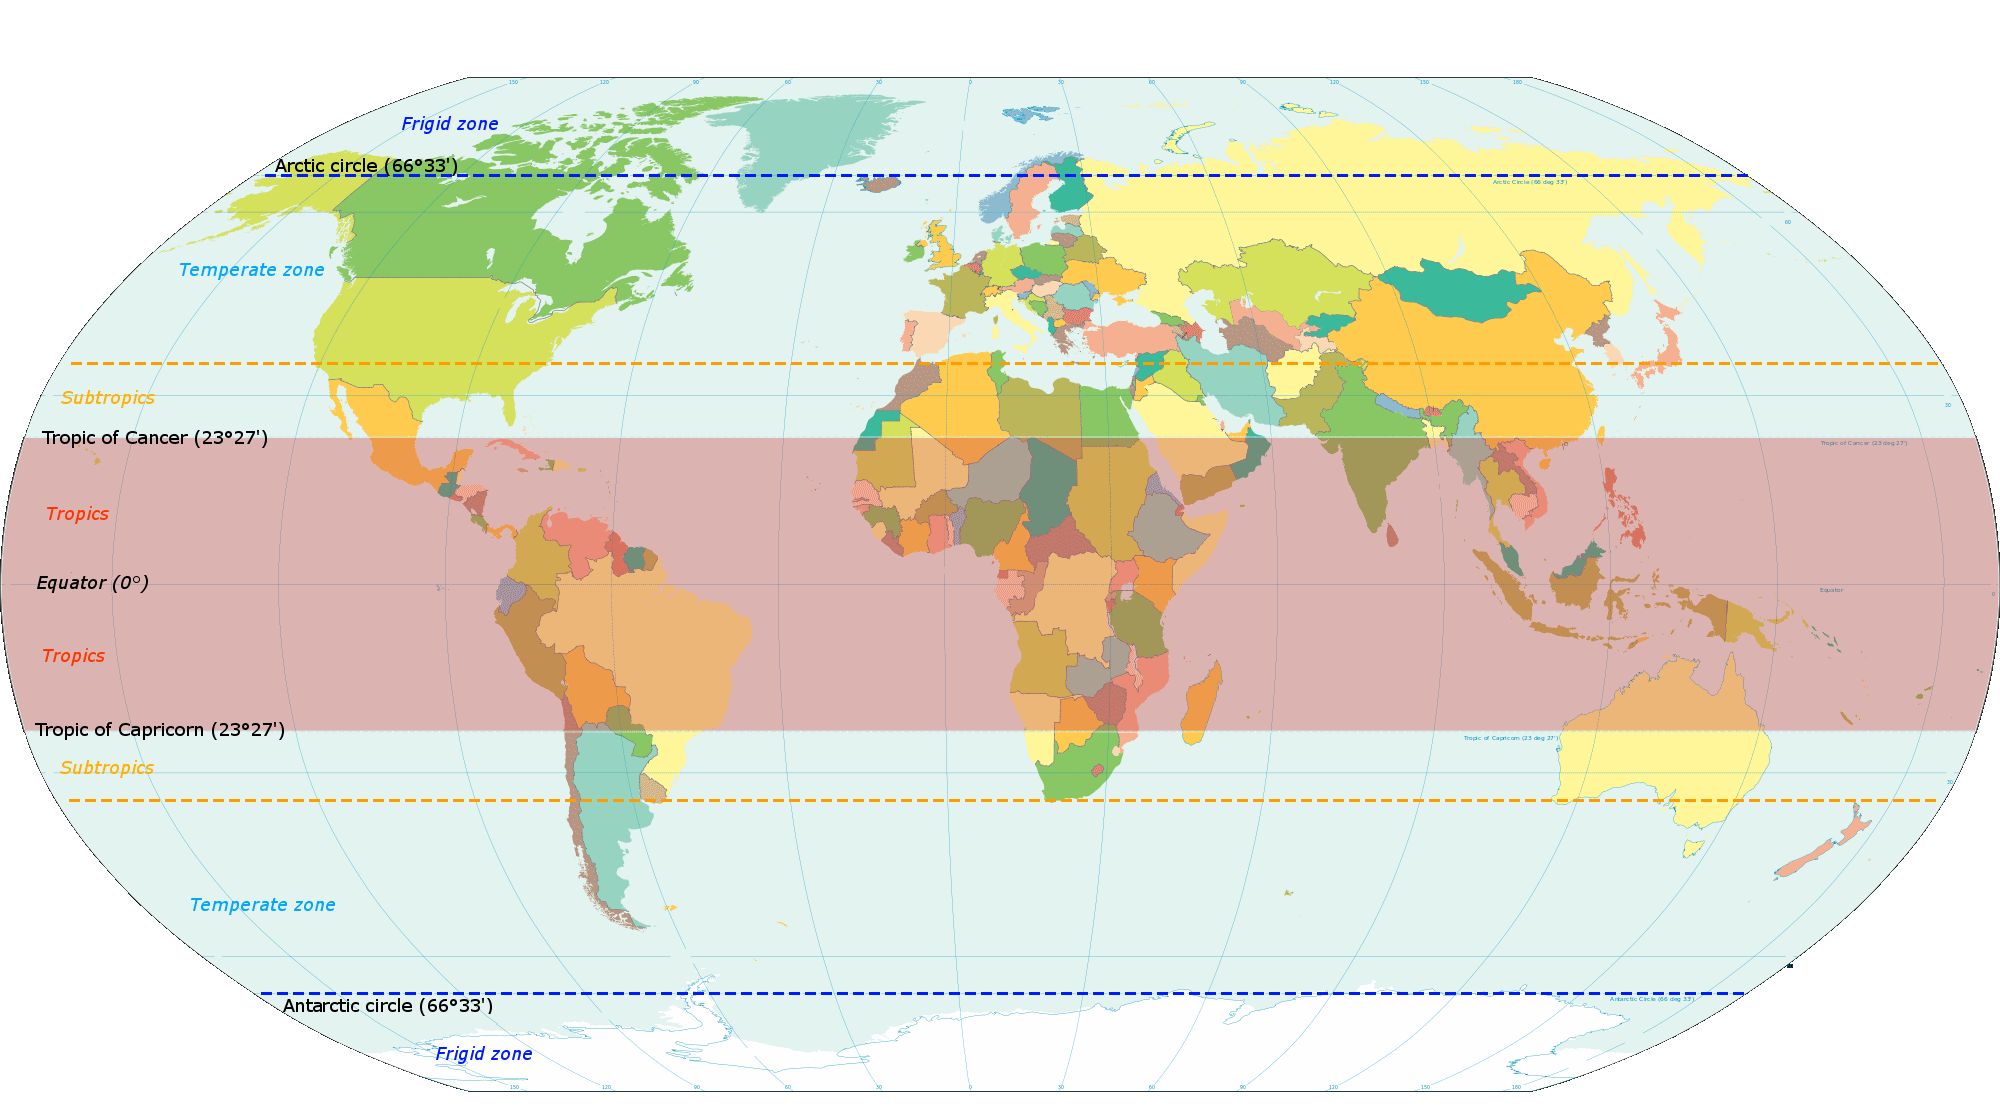 Png on world map. File indicating tropics and